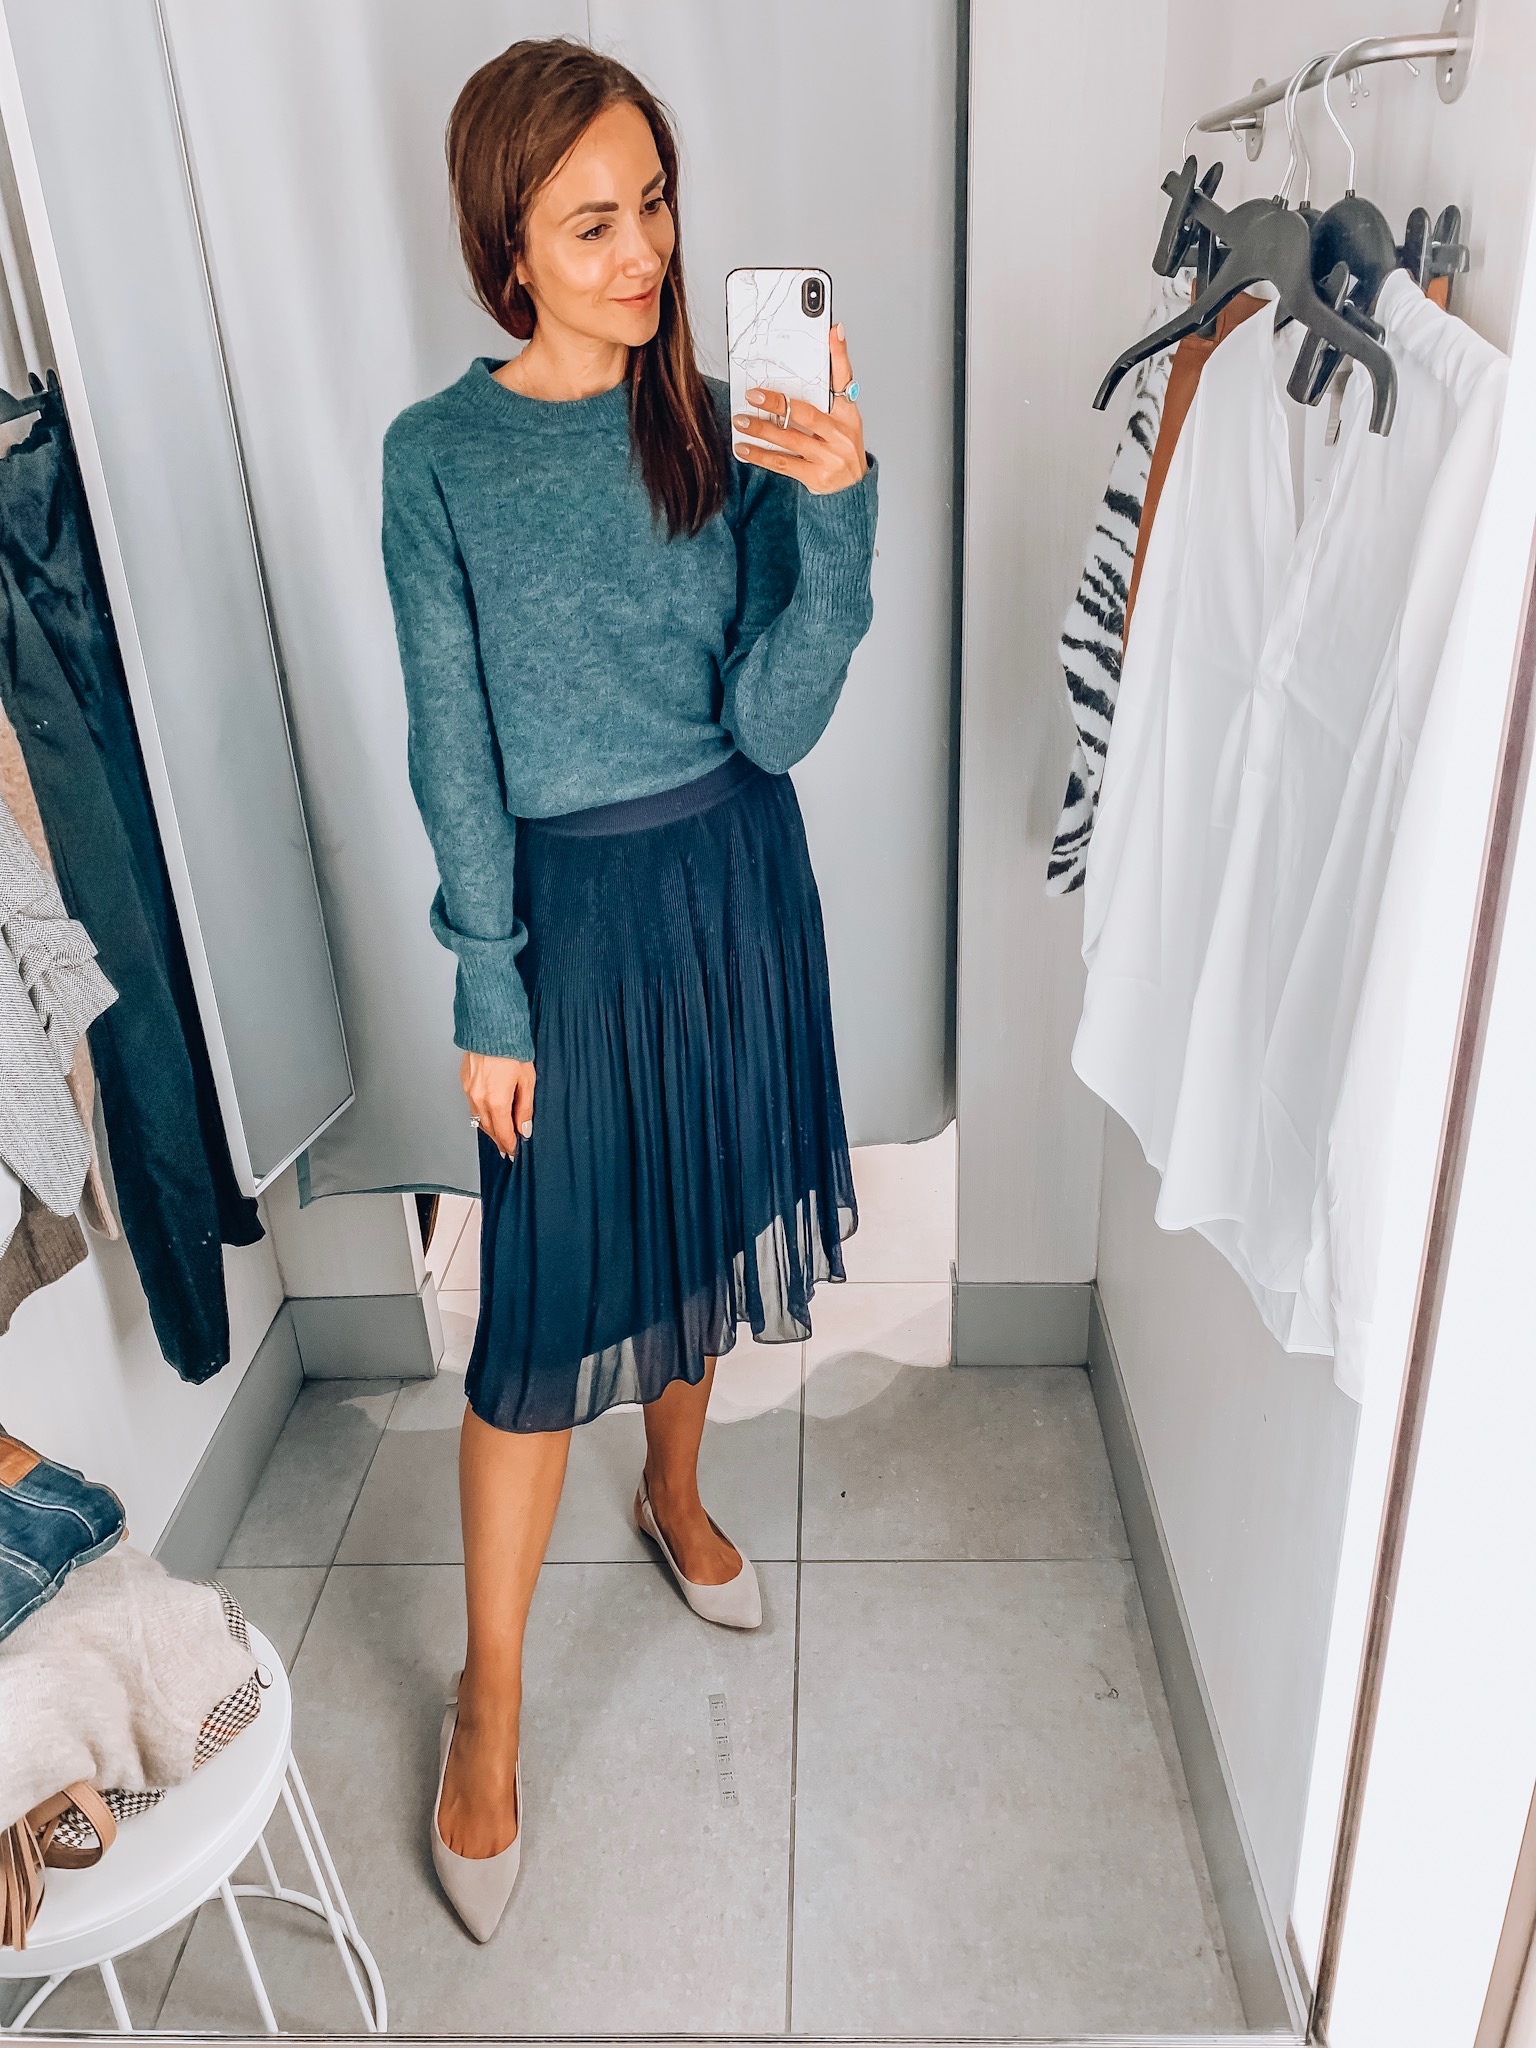 sweater, skirt, h&m try-on